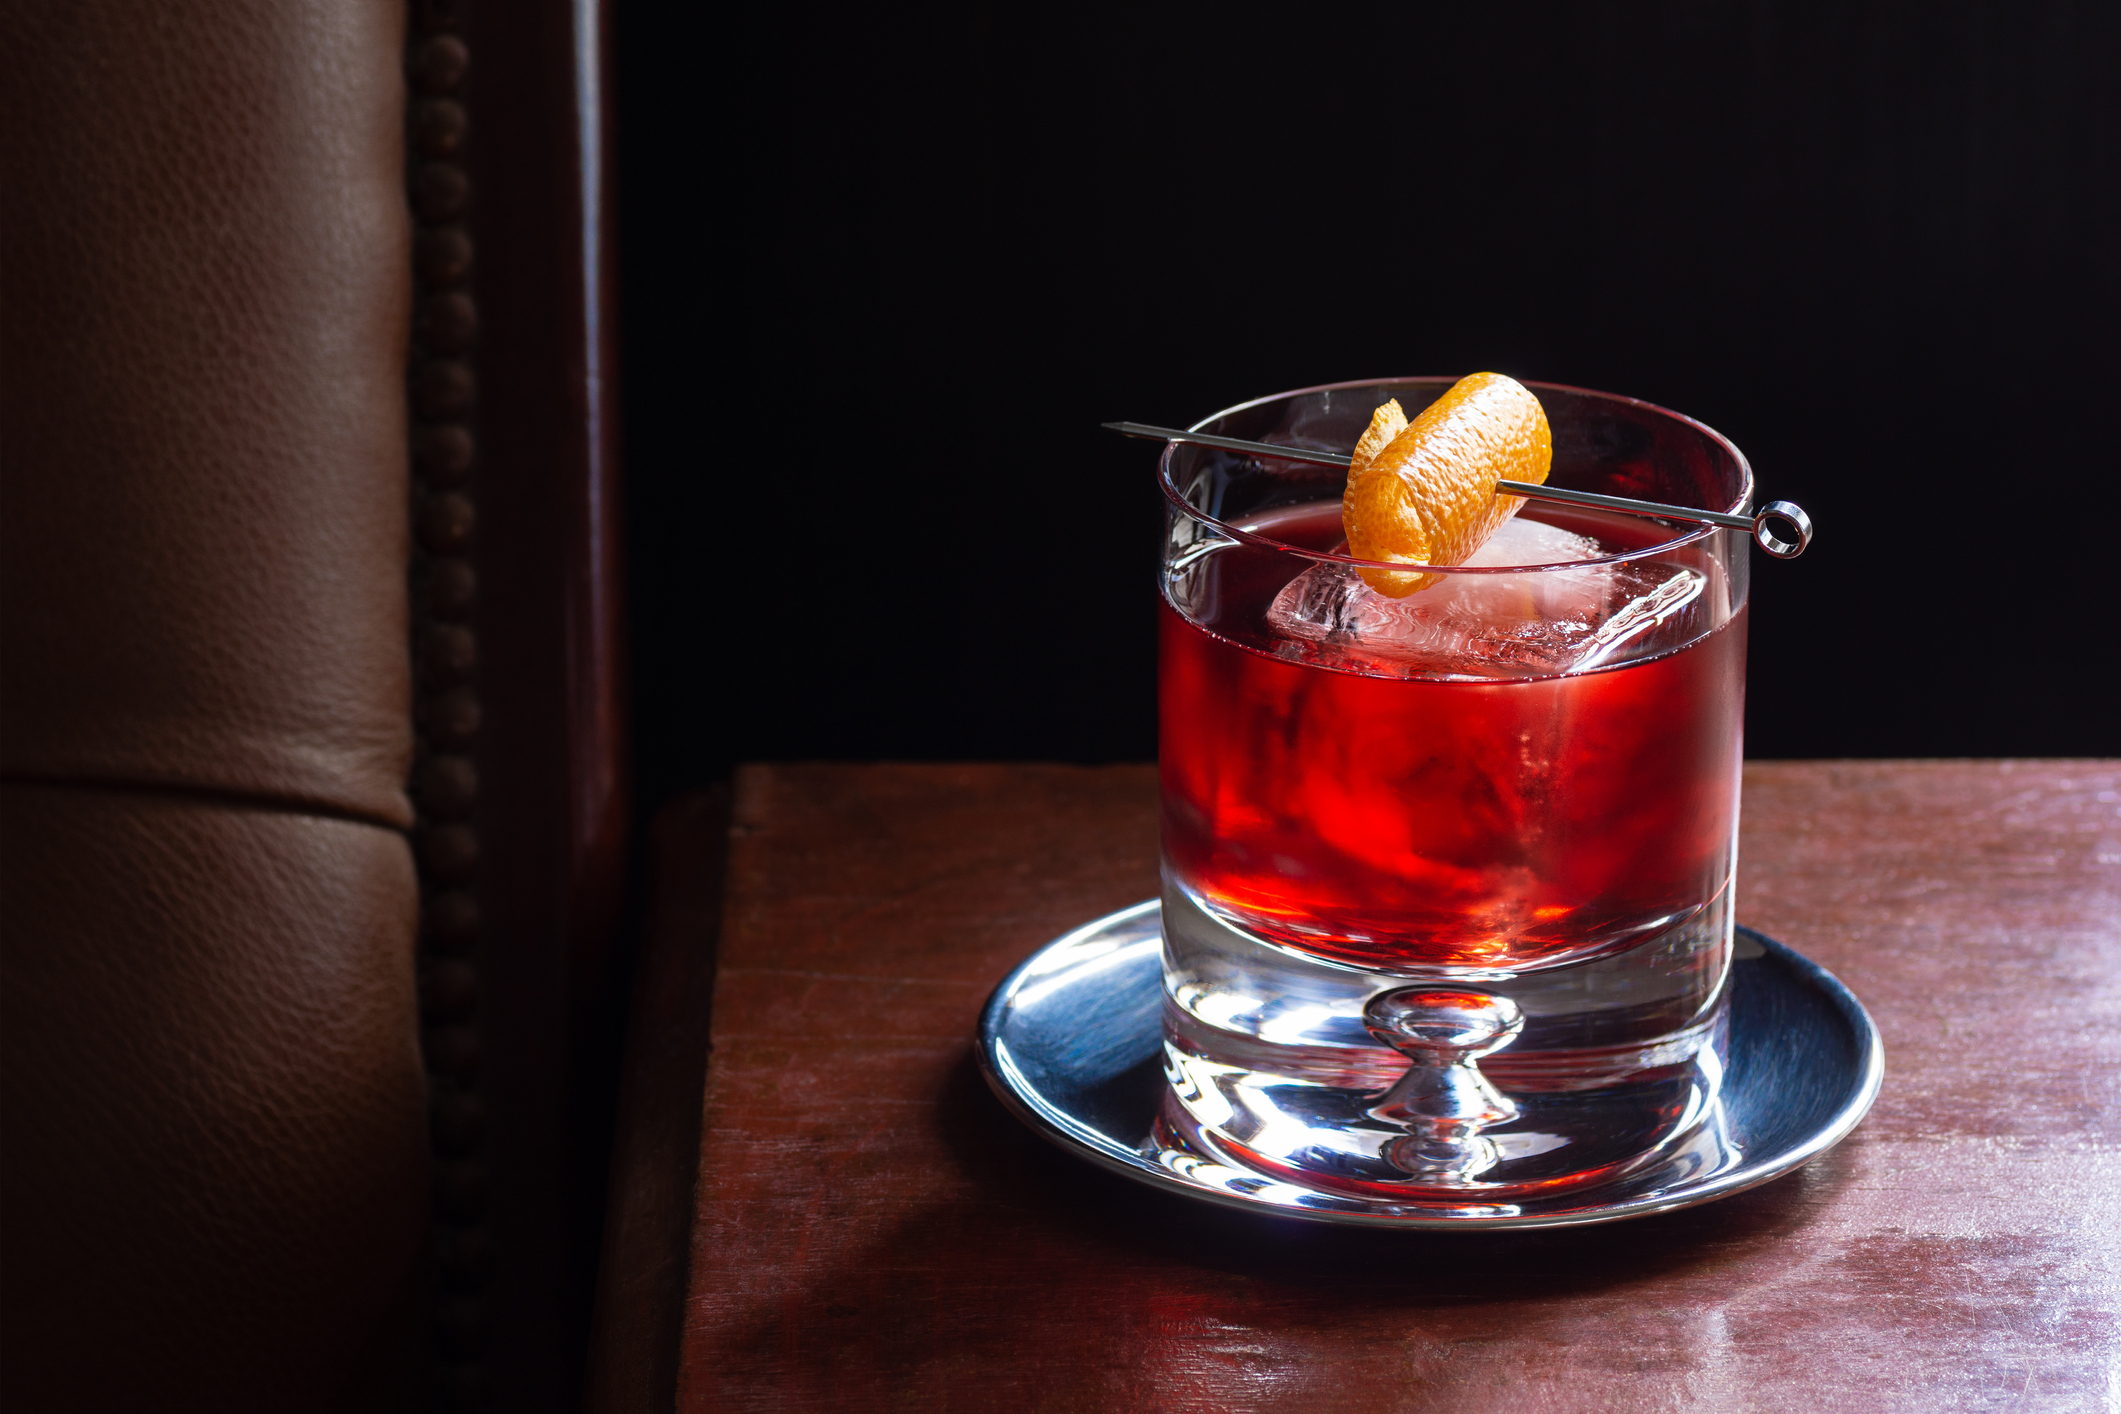 Negroni Cocktail, with Gin, Red Vermouth, and Campari, over Ice with Orange Twist in Dark Luxurious Bar